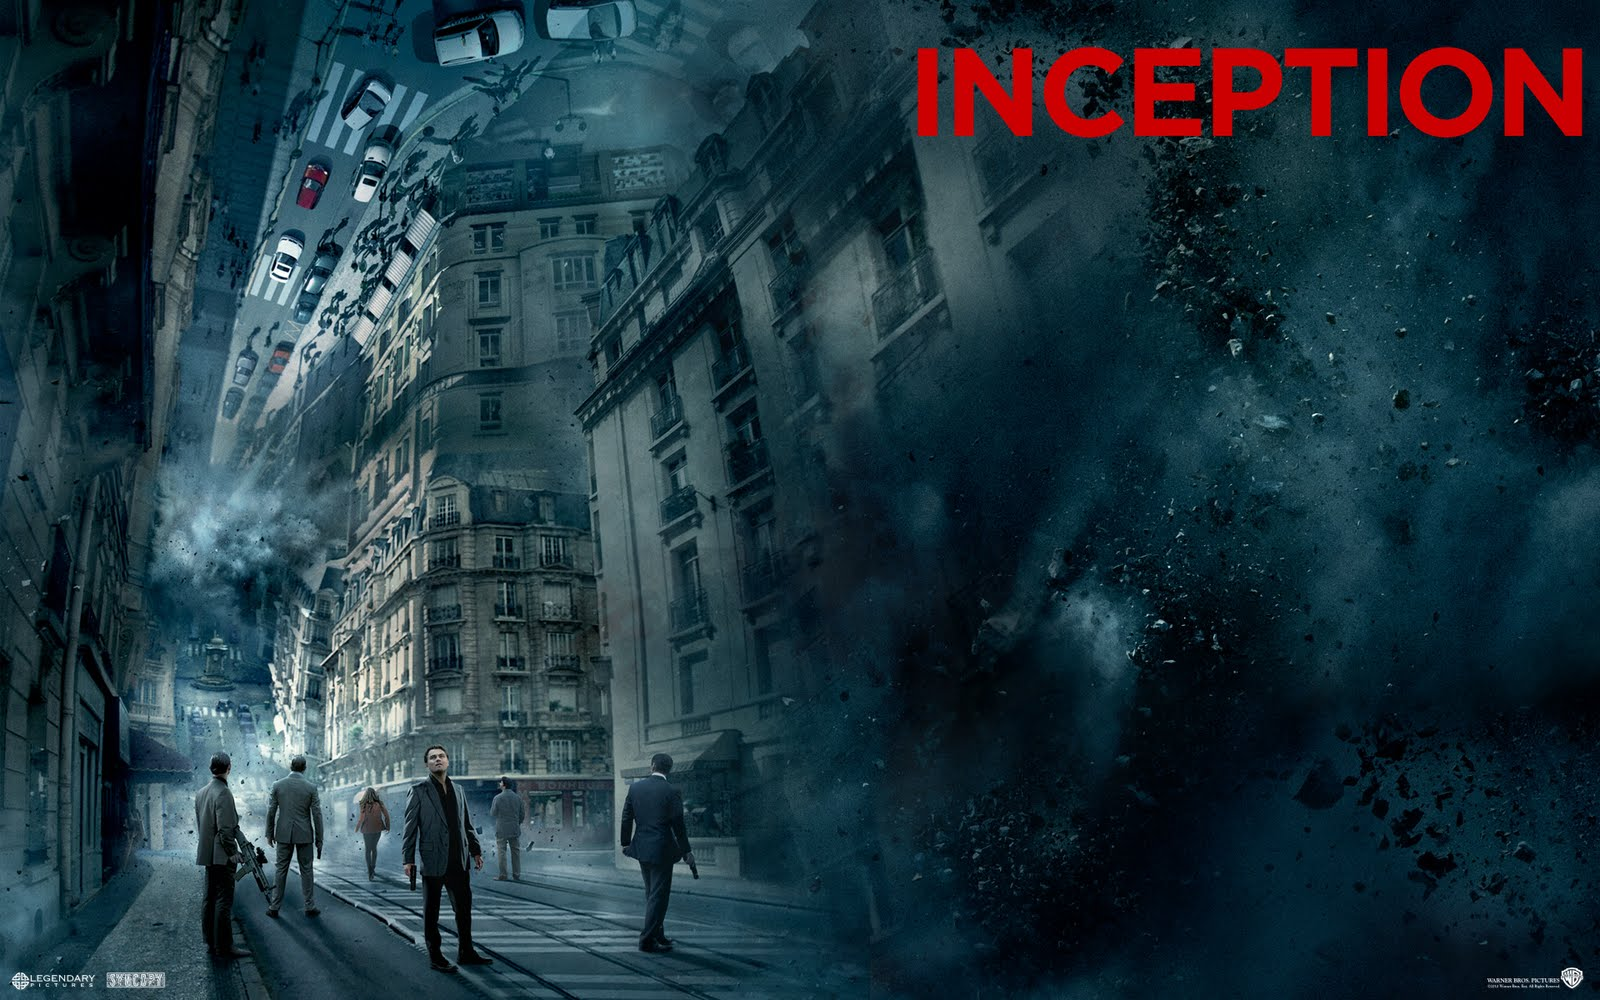 http://4.bp.blogspot.com/_V6TVDECge74/TGJsoqNxbCI/AAAAAAAAA8E/SEganeIk2Vo/s1600/photo%2BLeonardo_DiCaprio_in_Inception_Wallpaper%2BHD.jpg